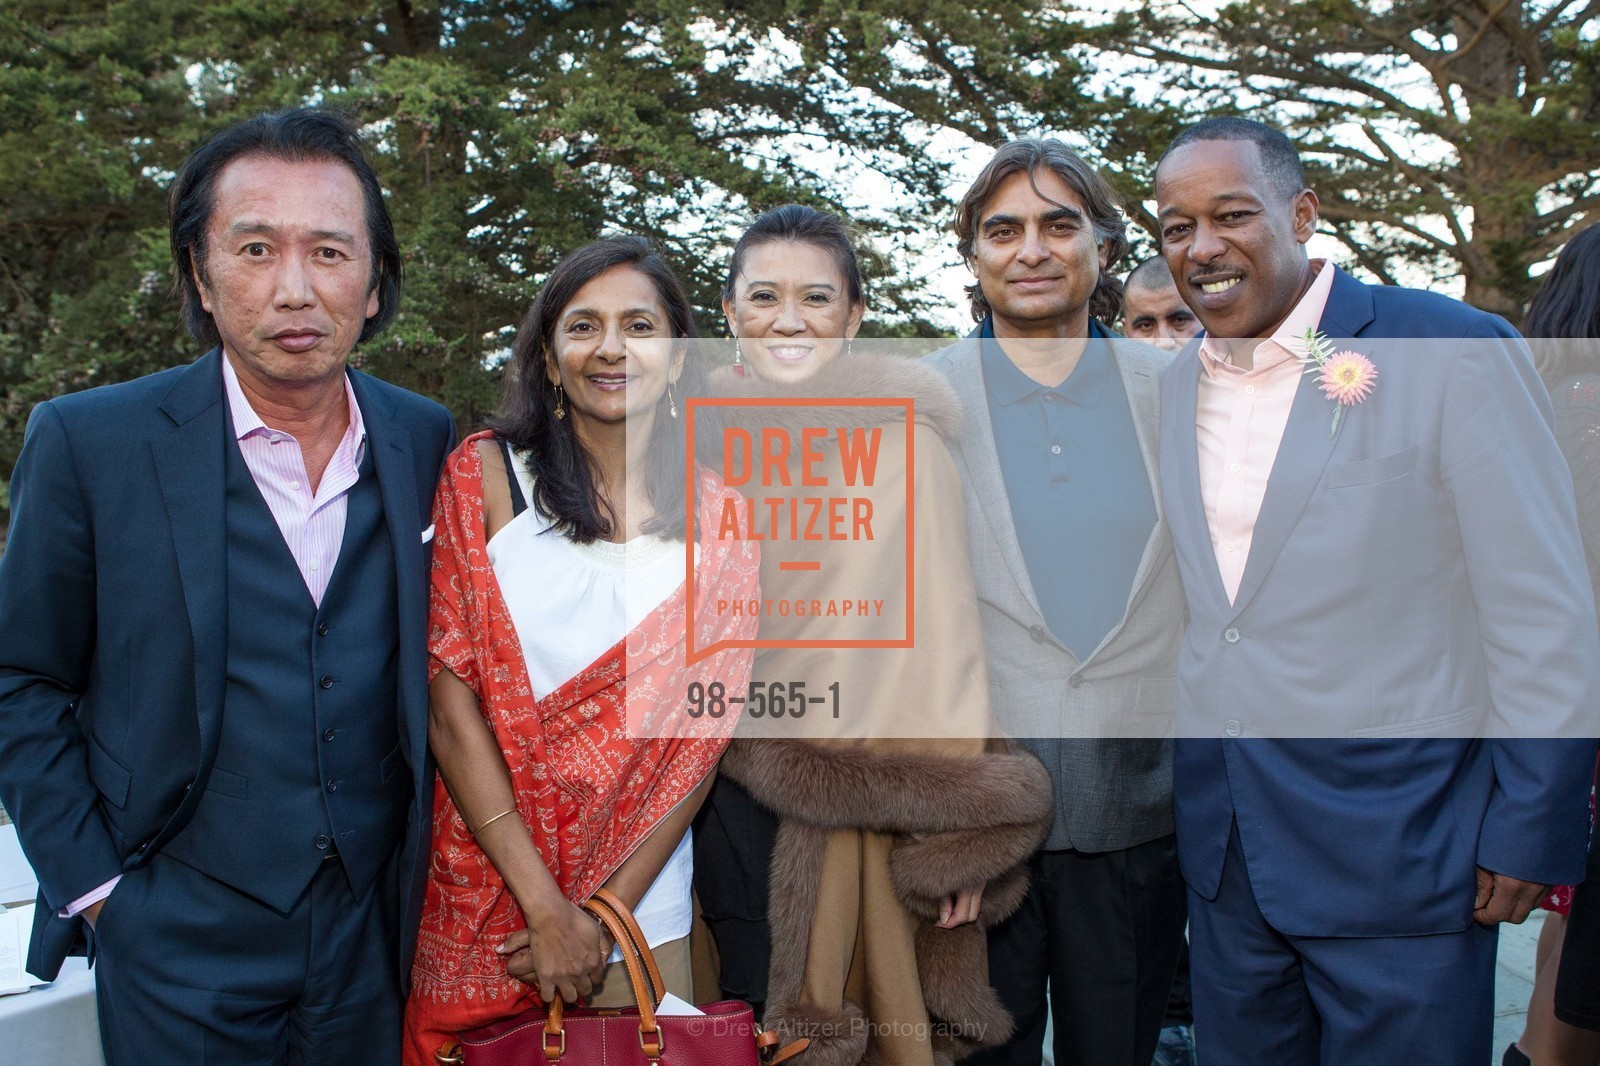 Steve Lau, Sue Jamwal, Mennor Chan, Kavinder Singh, Brook Mebrahtu, SAKS FIFTH AVENUE Hosts The GLAAD GALA Kick-Off Party, US, September 12th, 2014,Drew Altizer, Drew Altizer Photography, full-service agency, private events, San Francisco photographer, photographer california